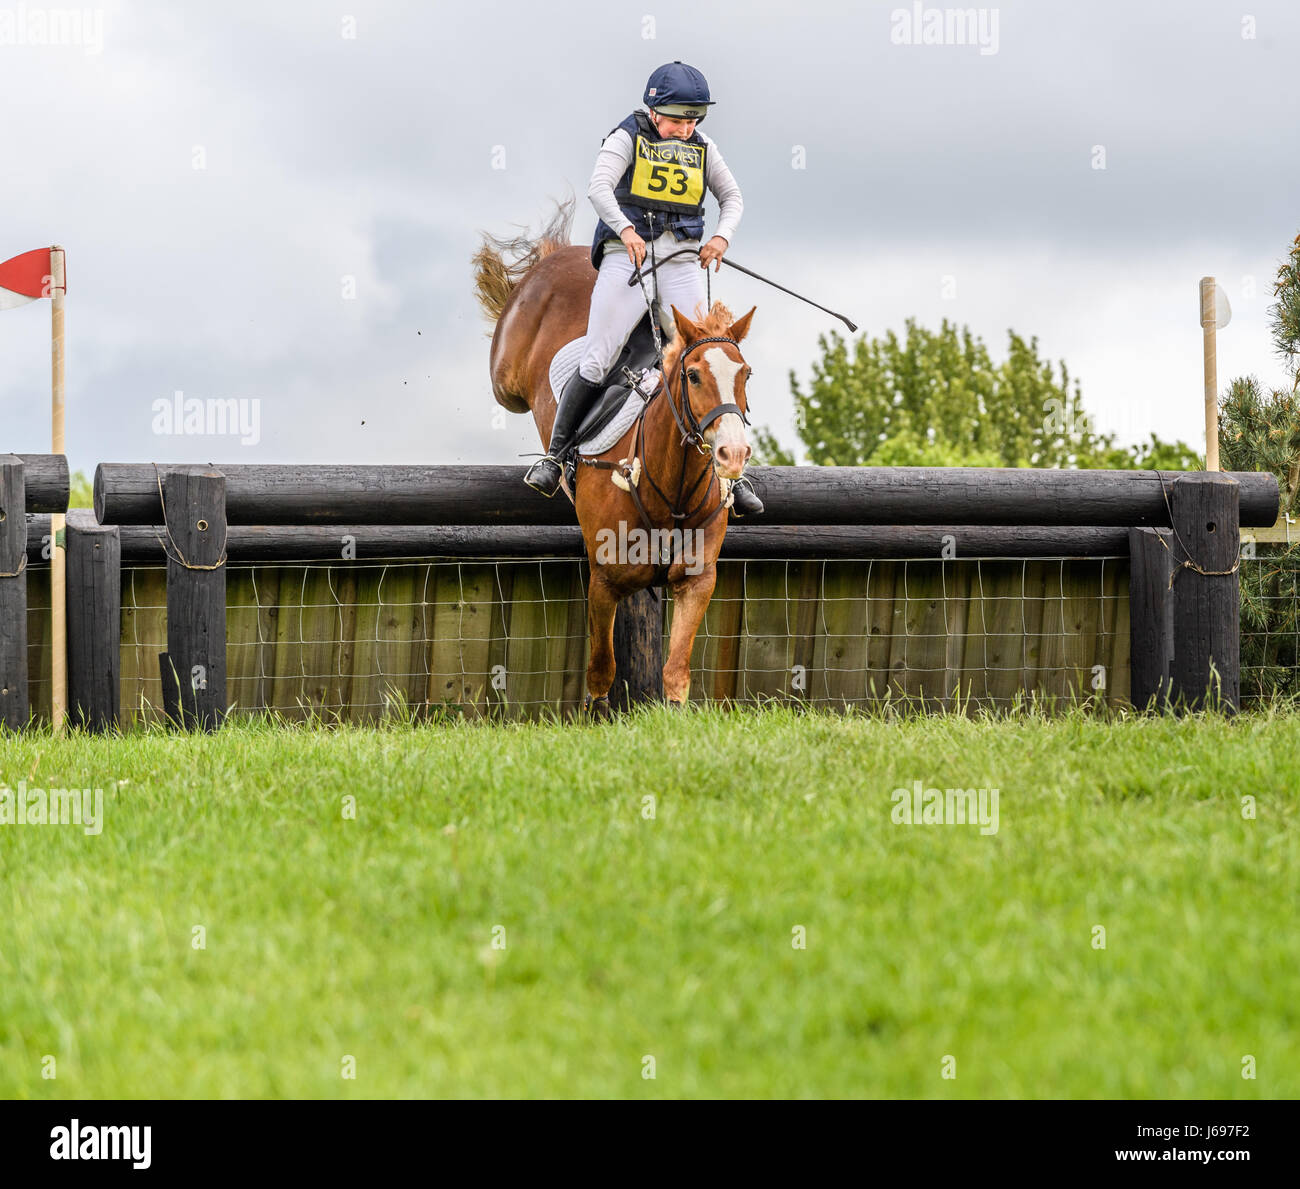 Rockingham Castle grounds, Corby, England. Saturday 20th May 2017. Boo Guest and her horse Nanteglwys Brynmor leap Stock Photo